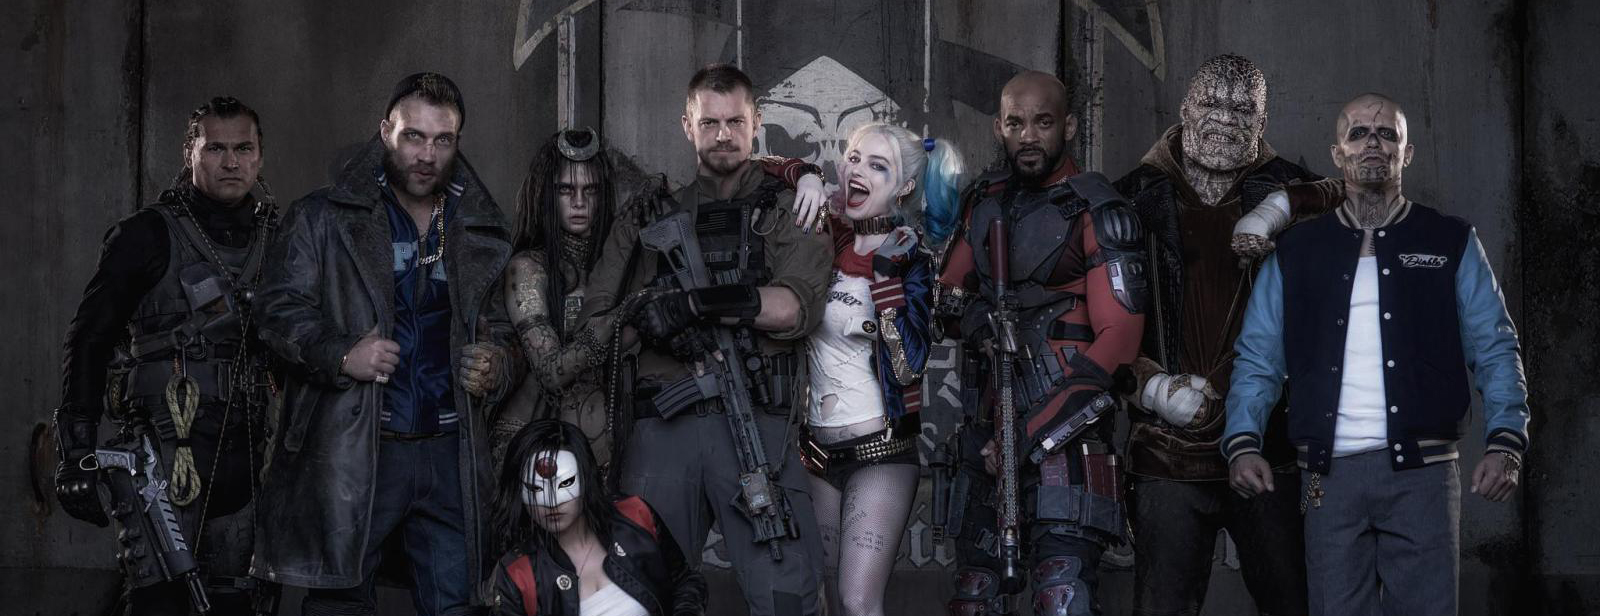 Task Force X in 'Suicide Squad'